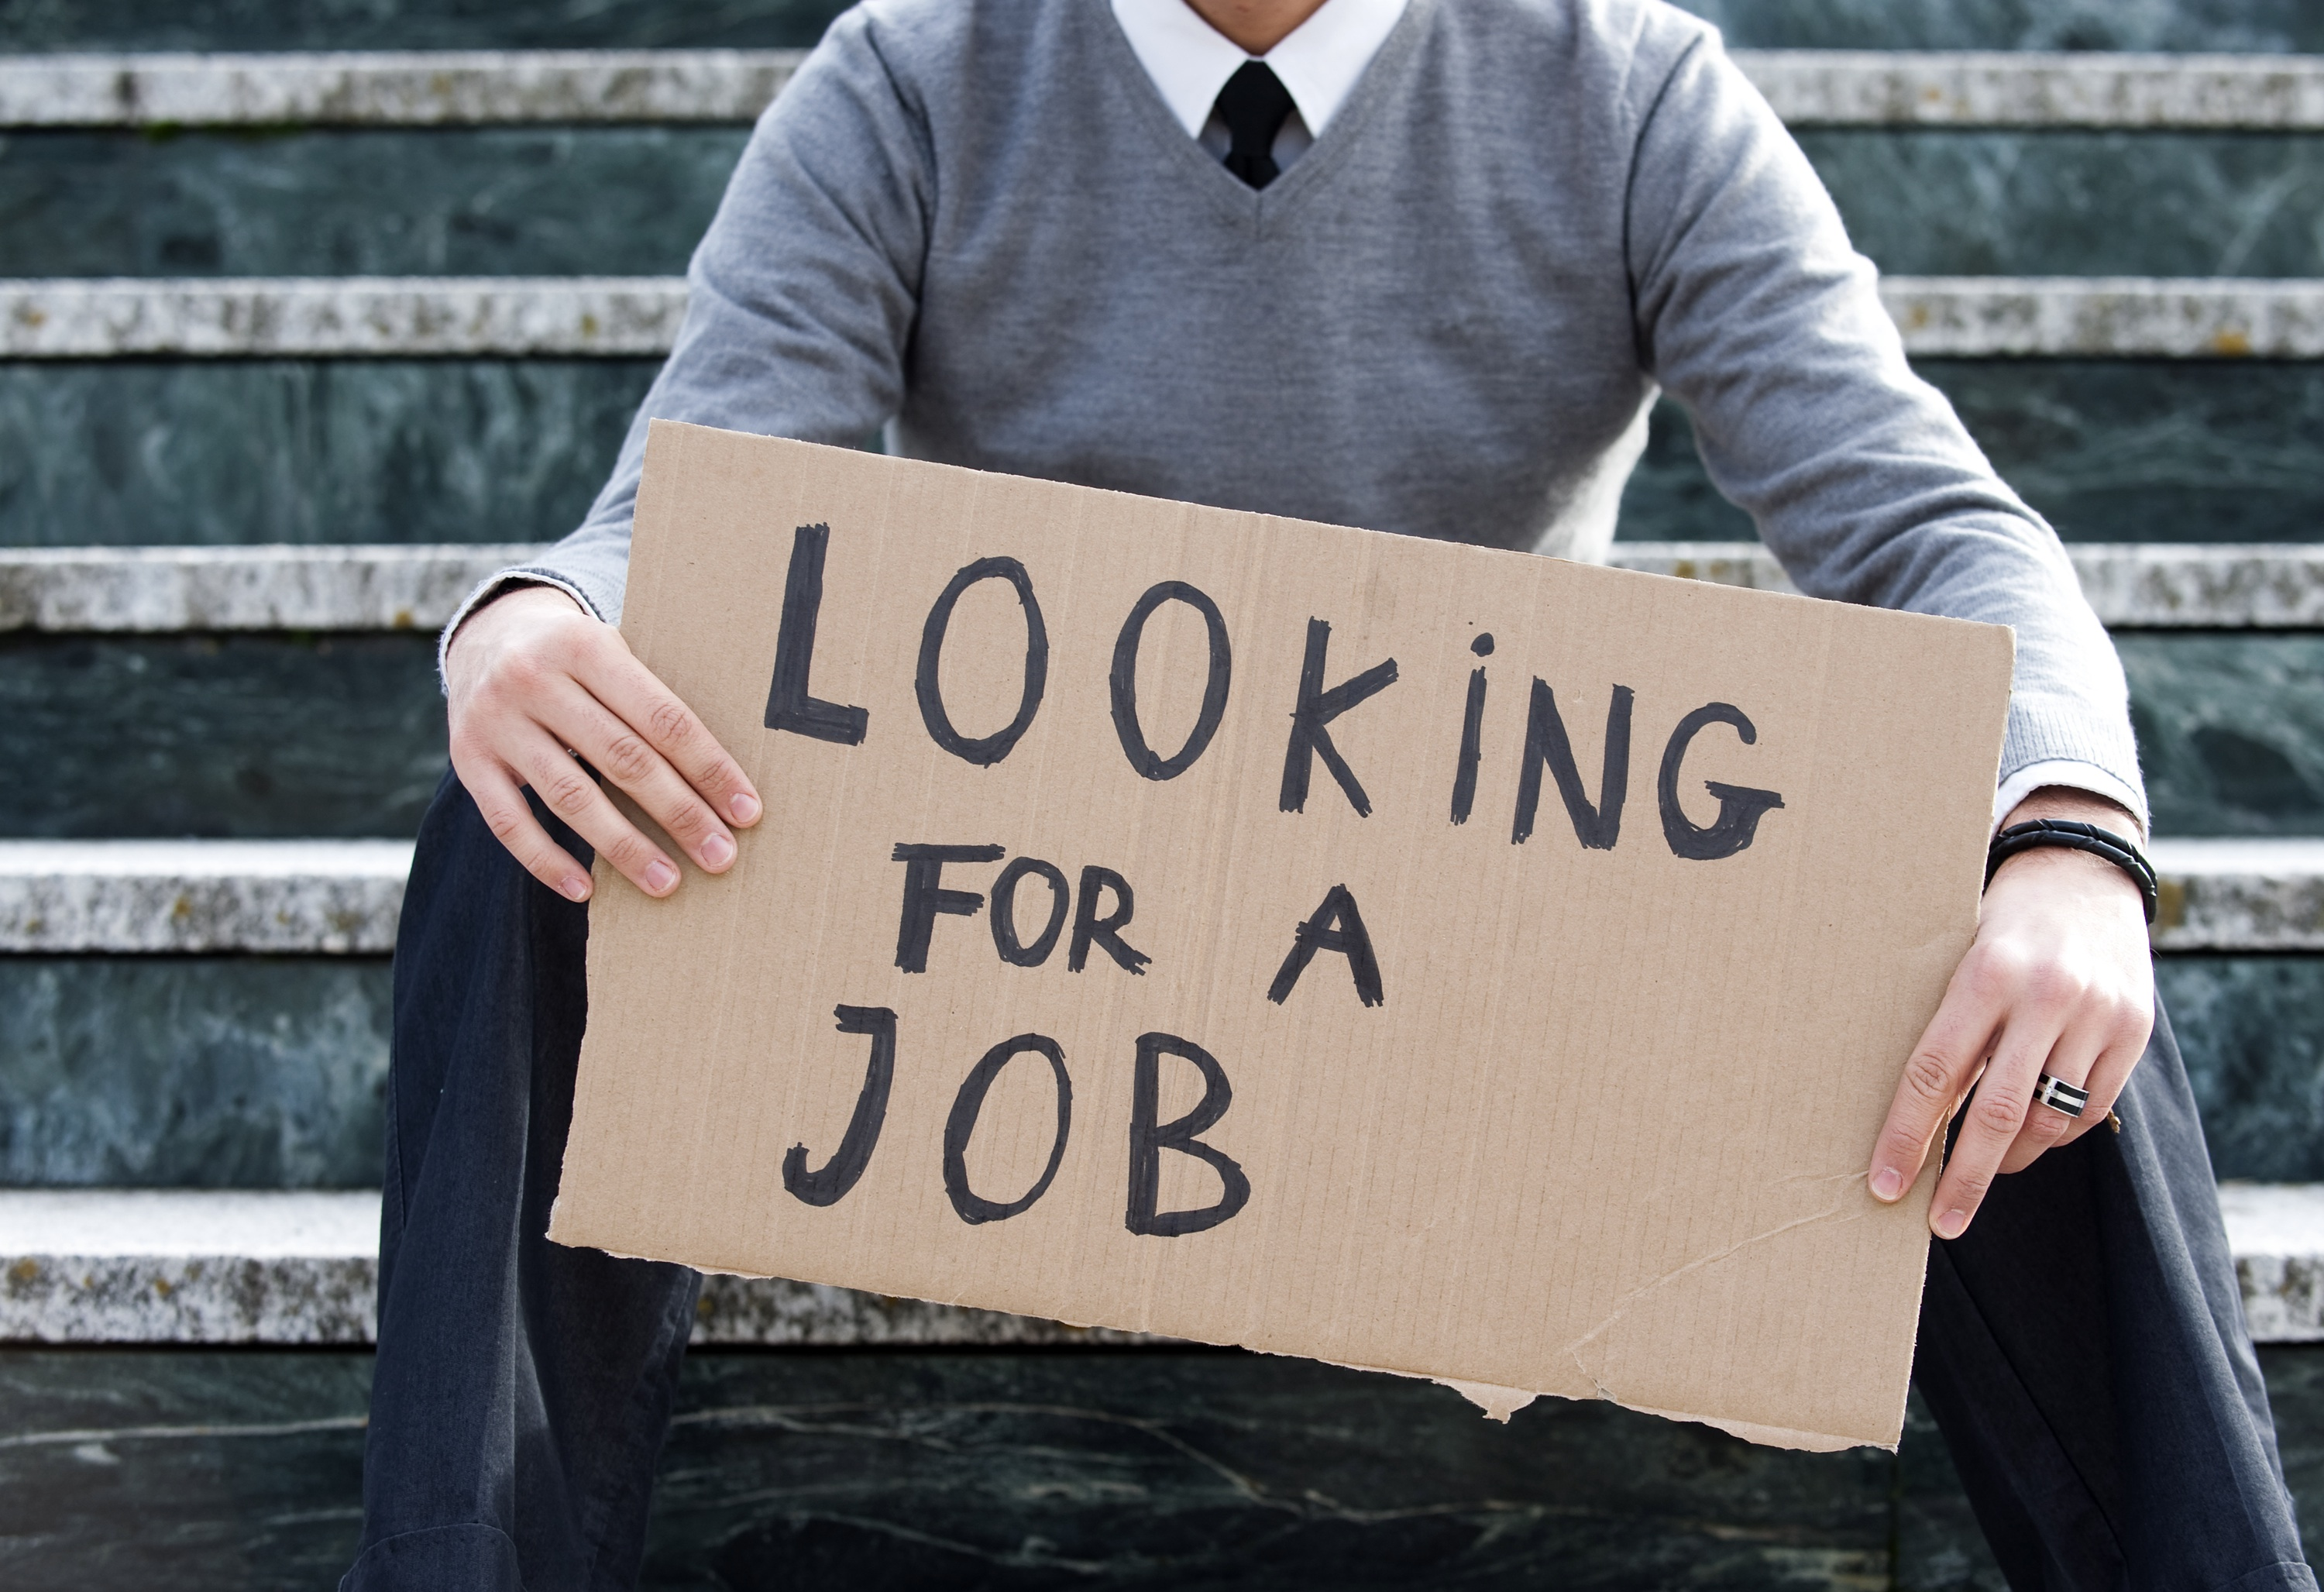 15% of unemployement persons in the EU found a job